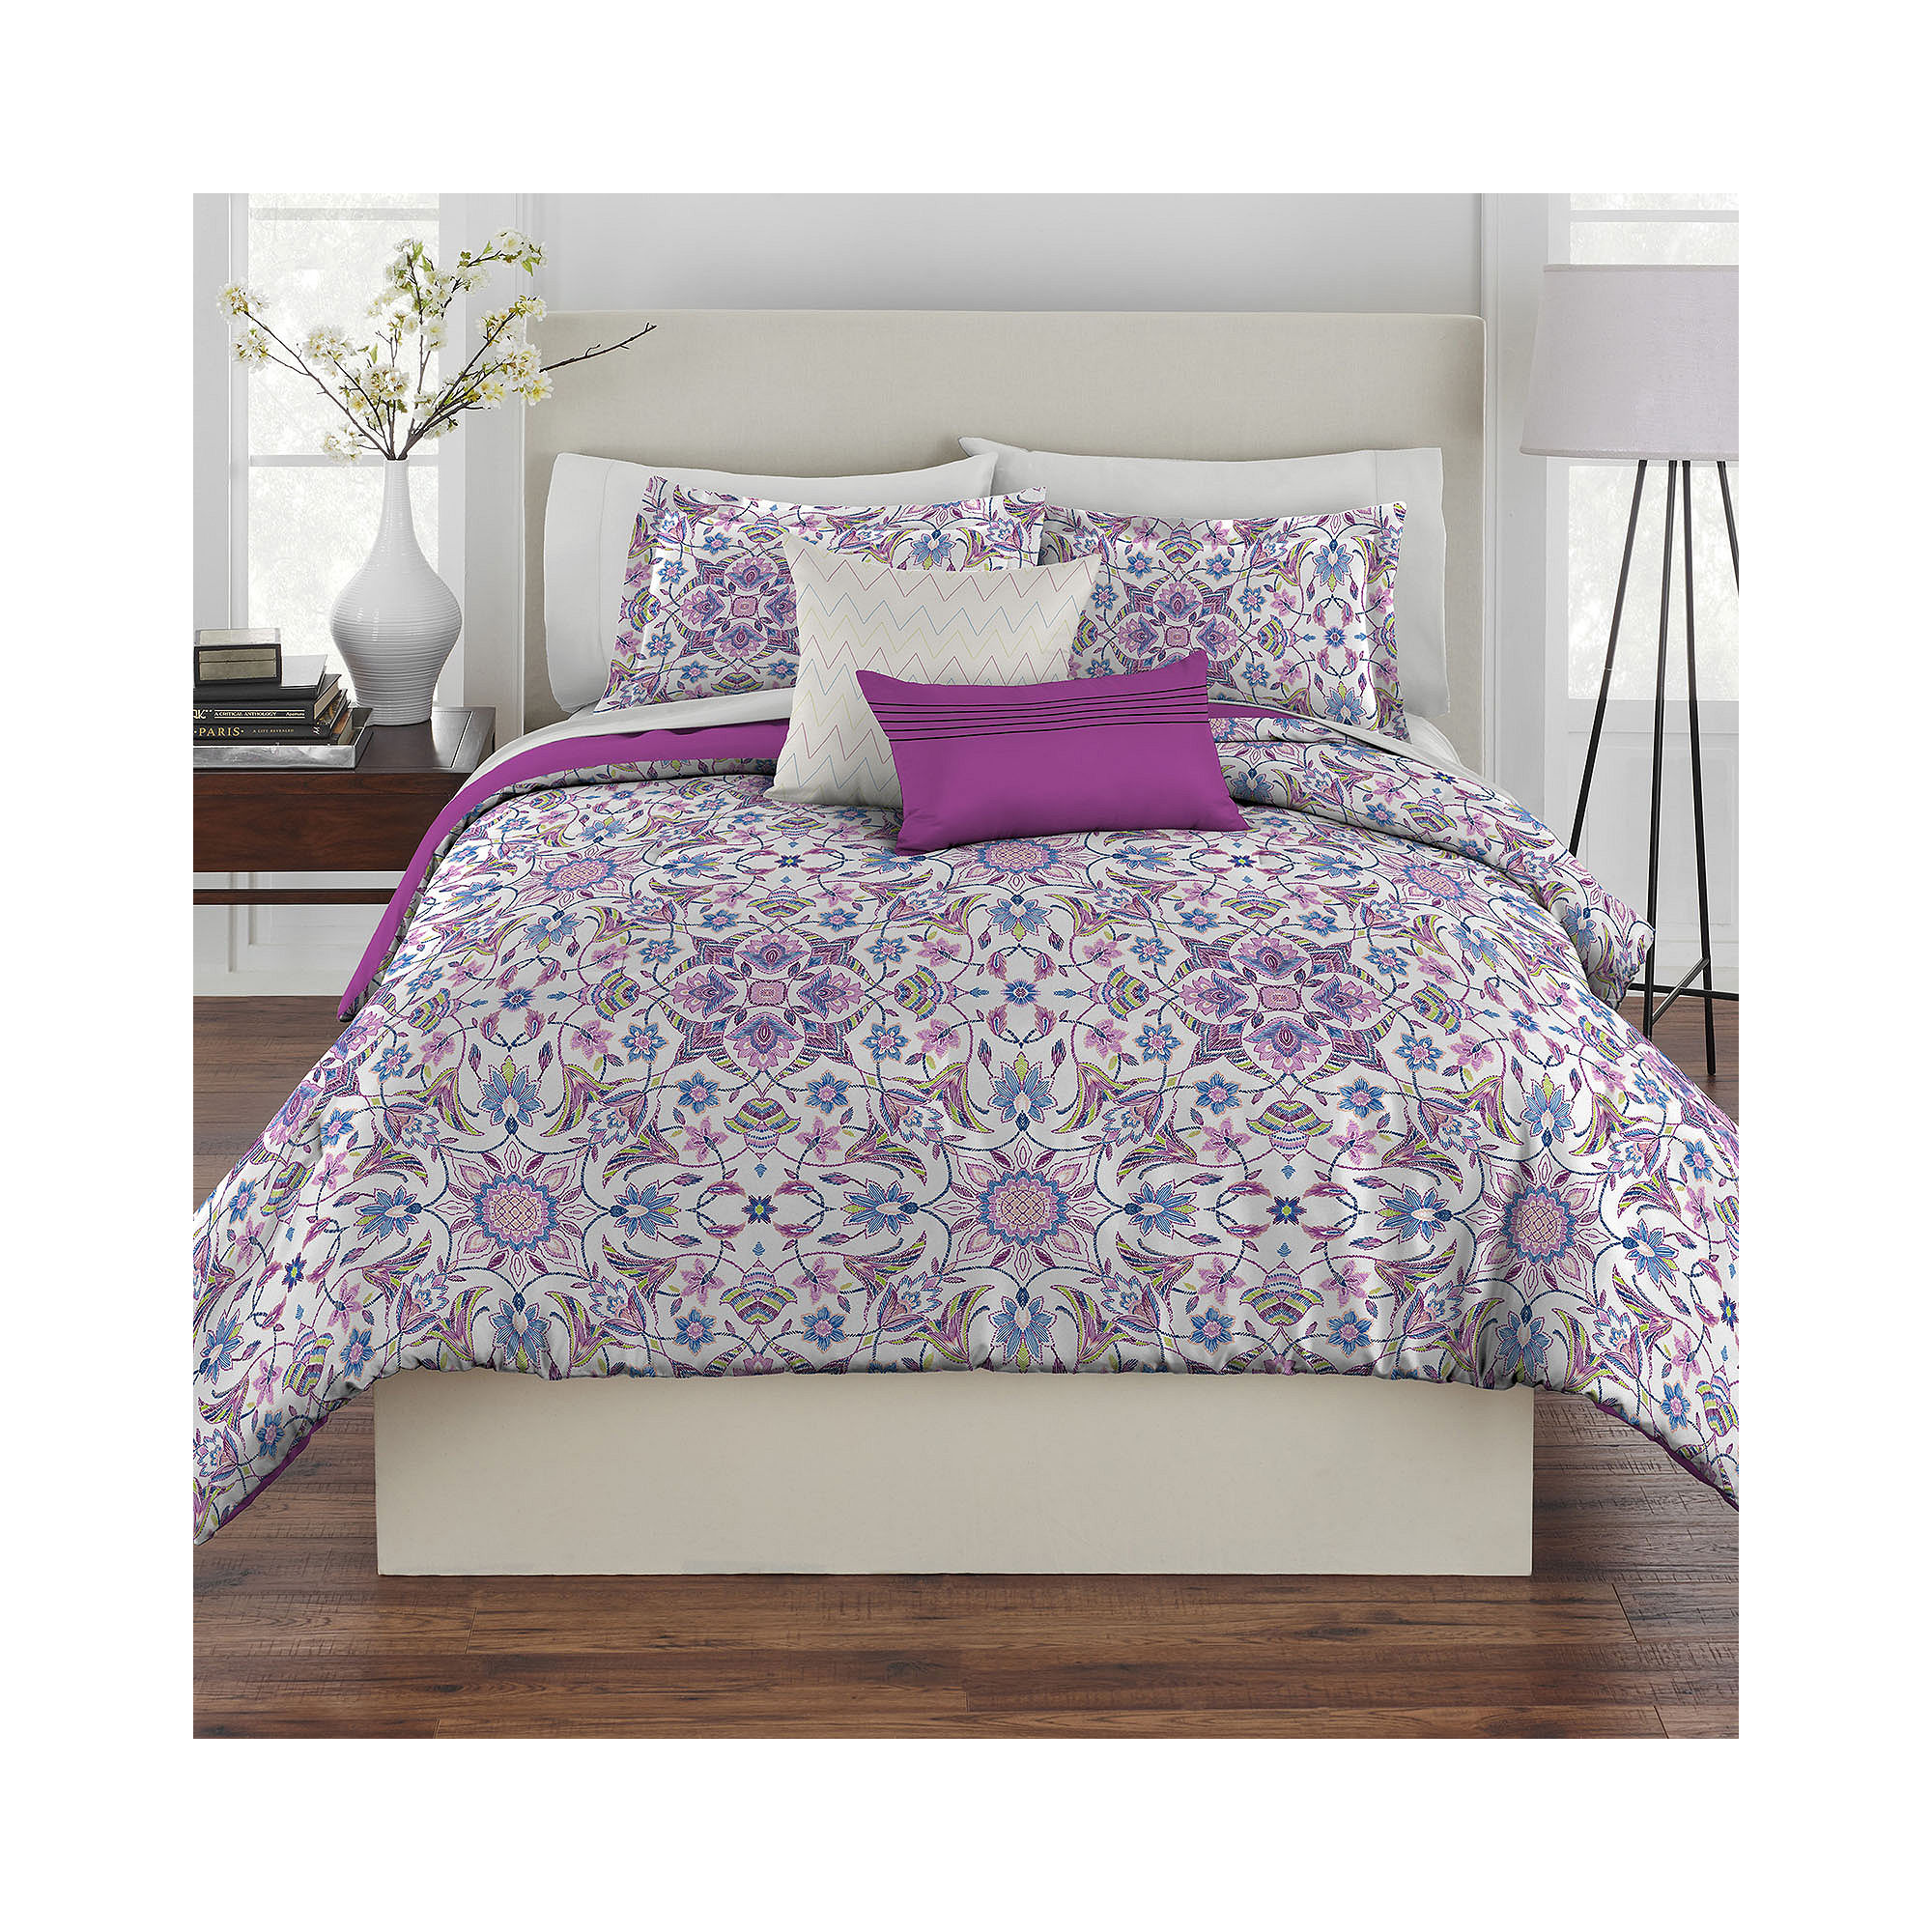 Rhapsody Ibiza Bedding Twin